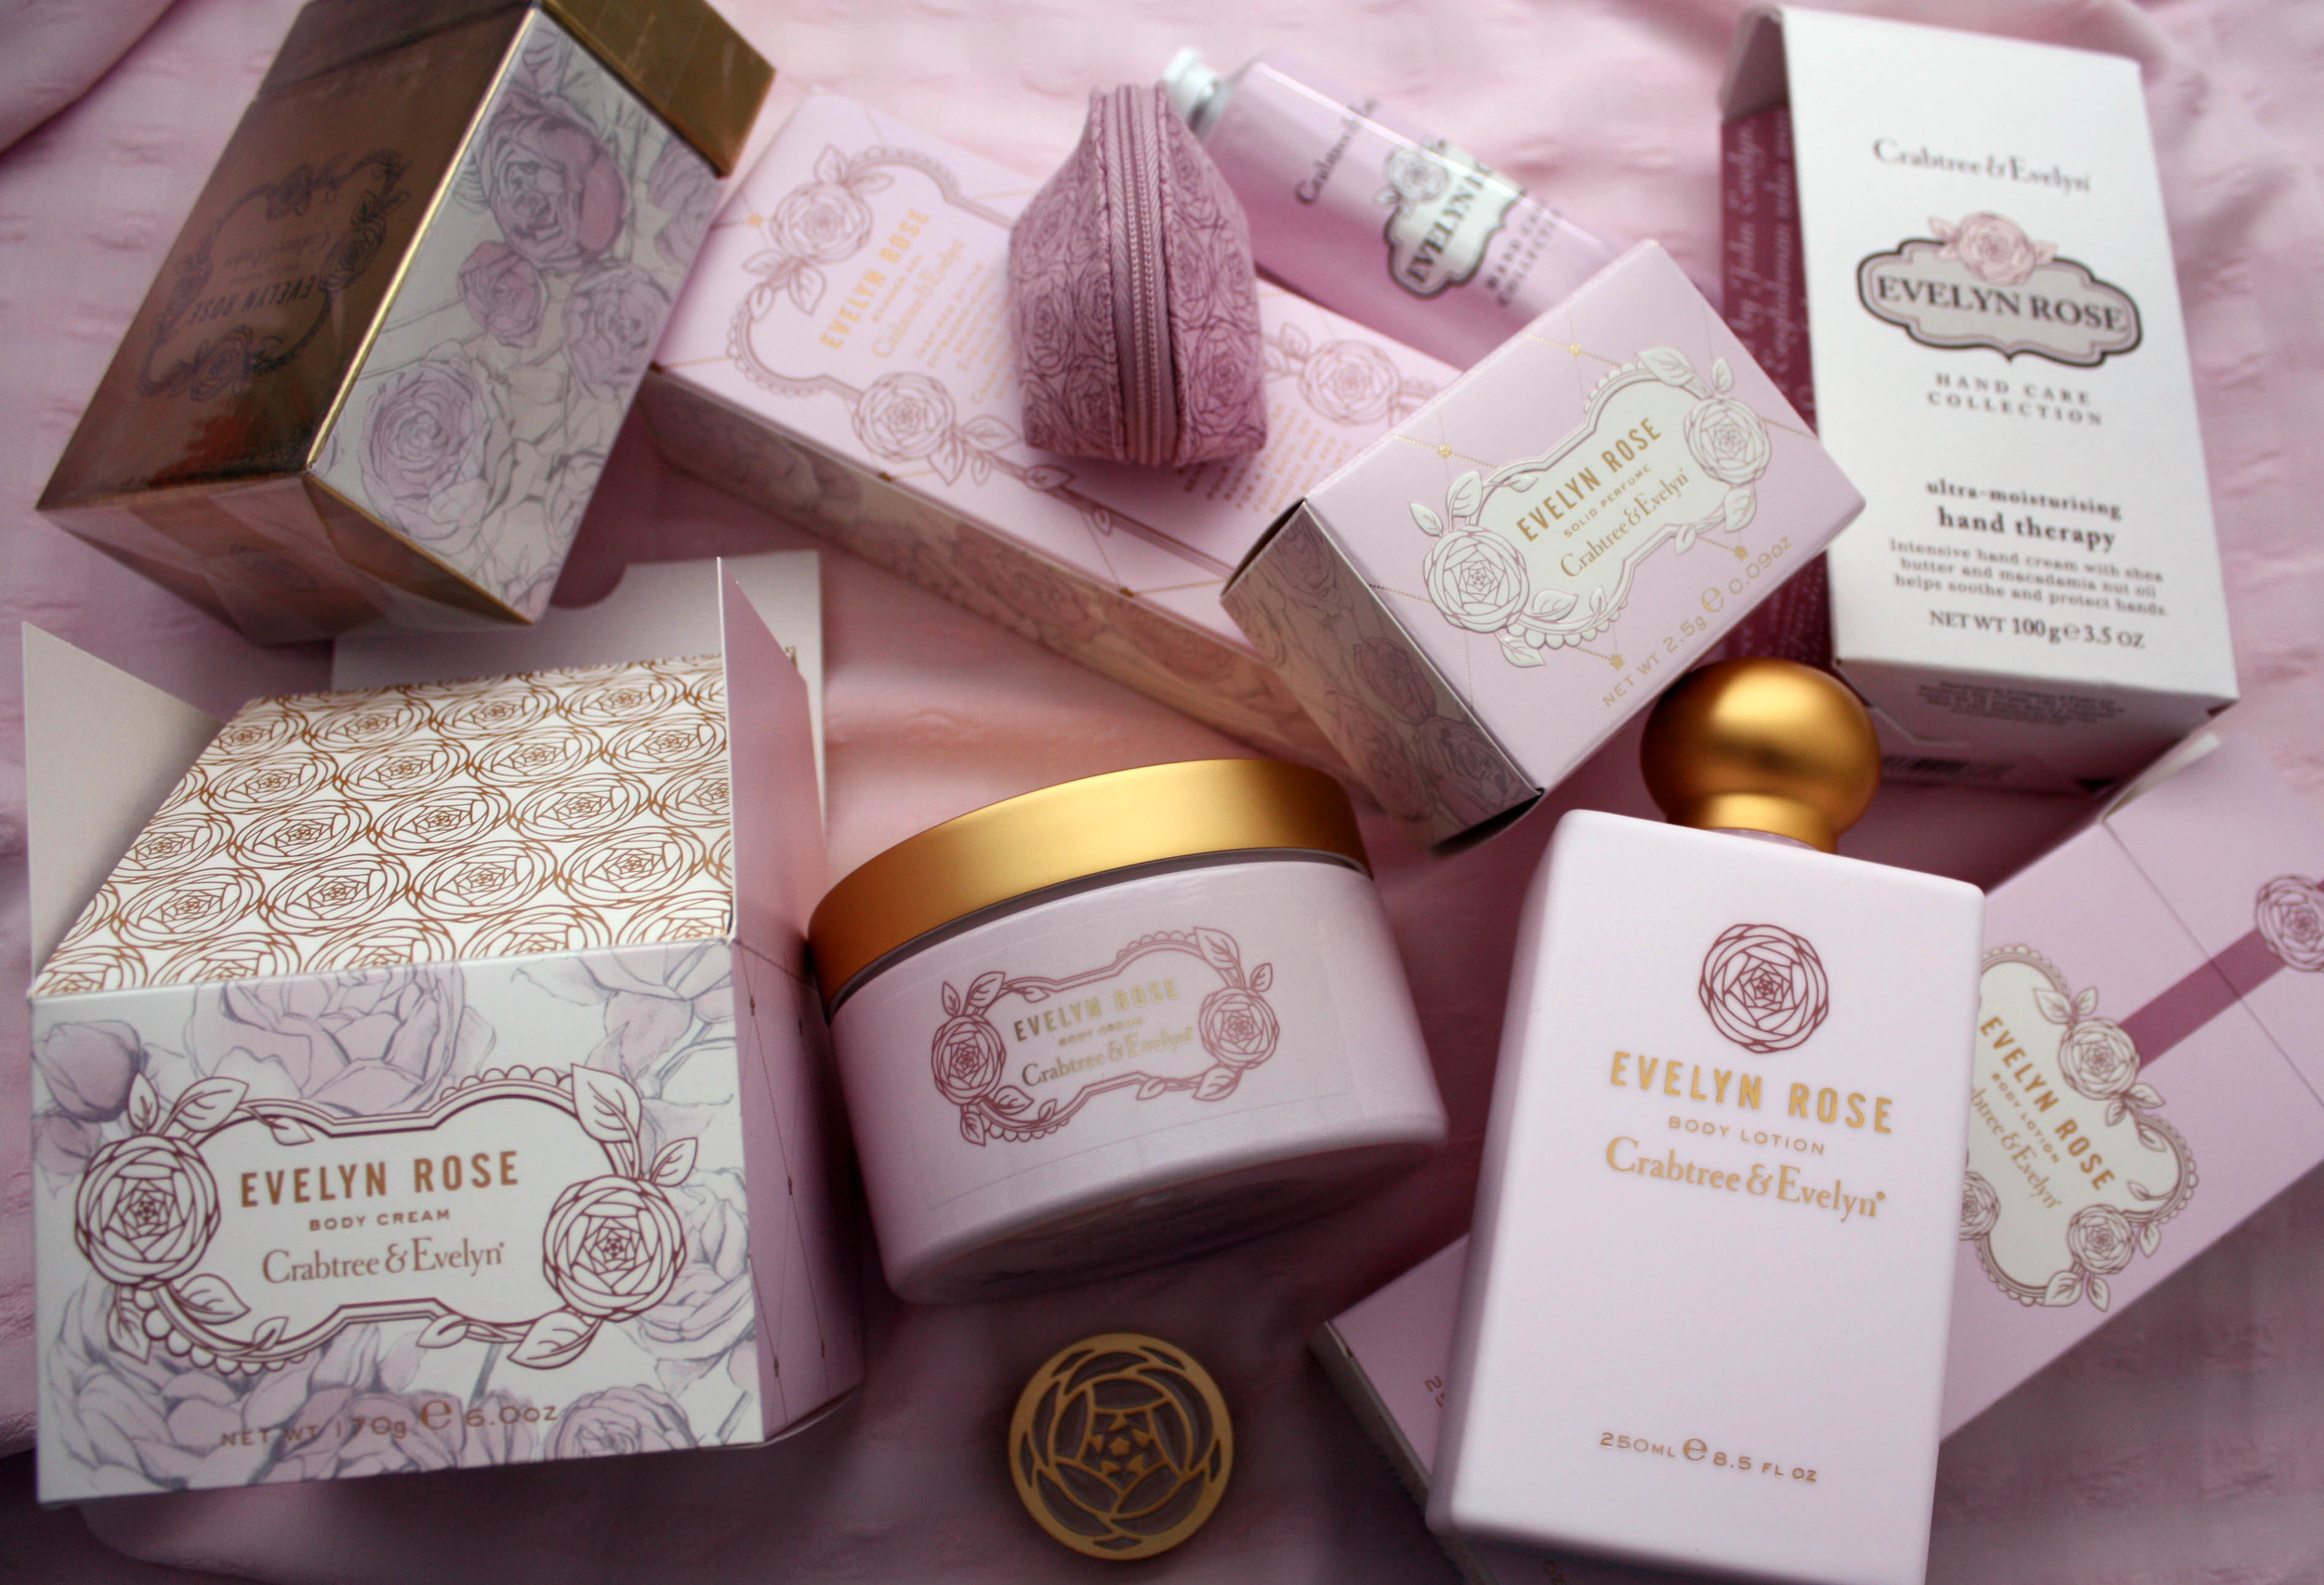 CRABTREE & EVELYN / Evelyn Rose collection packaging